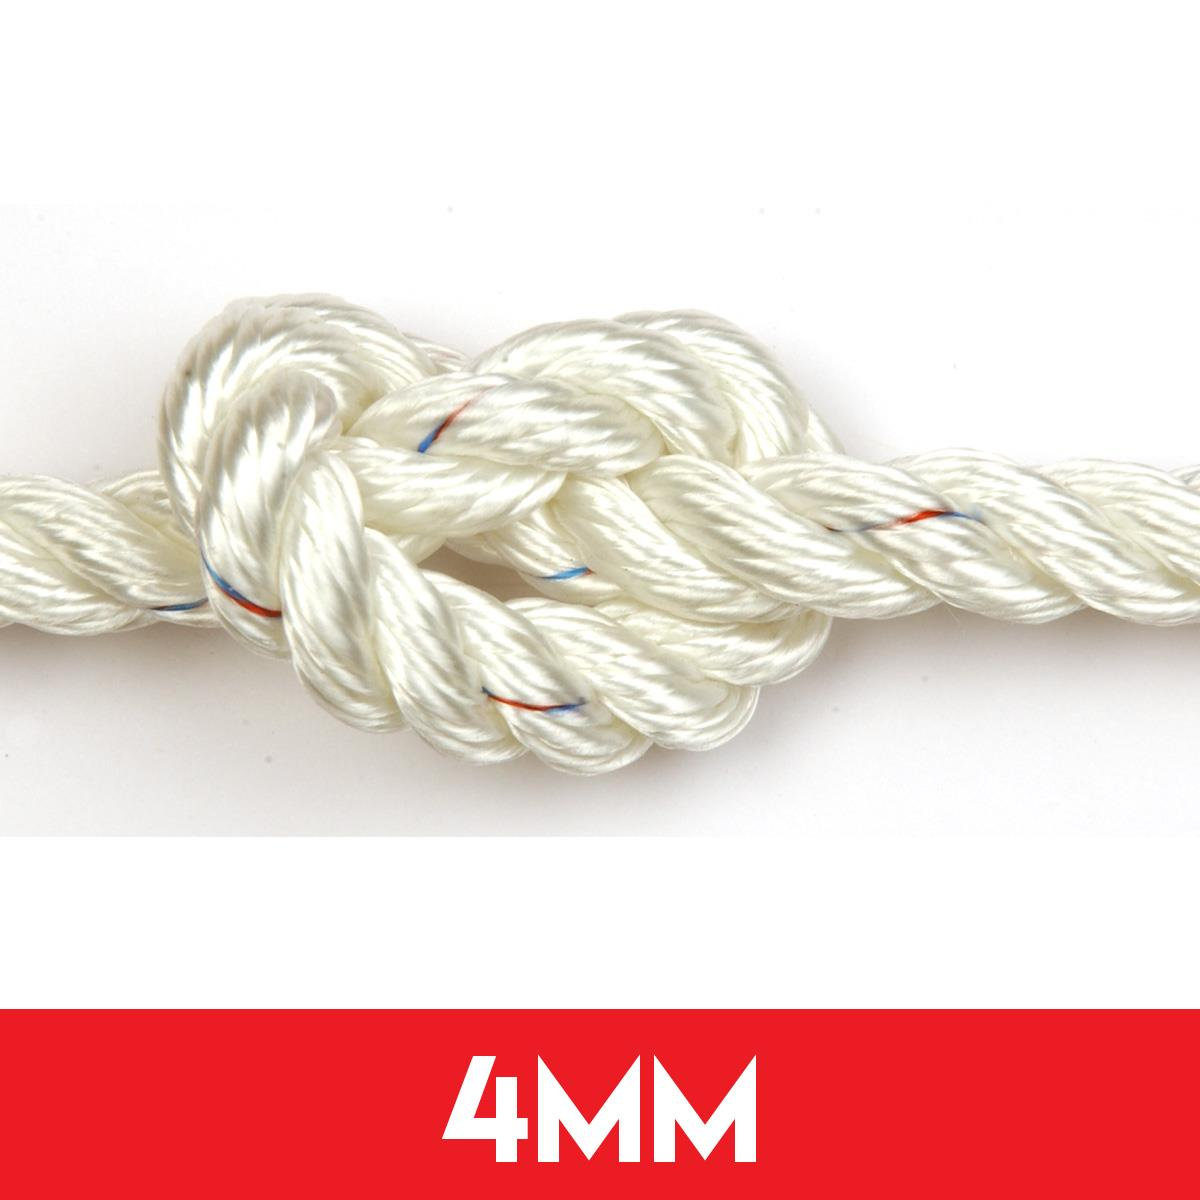 4mm 3 Strand Polyester Rope